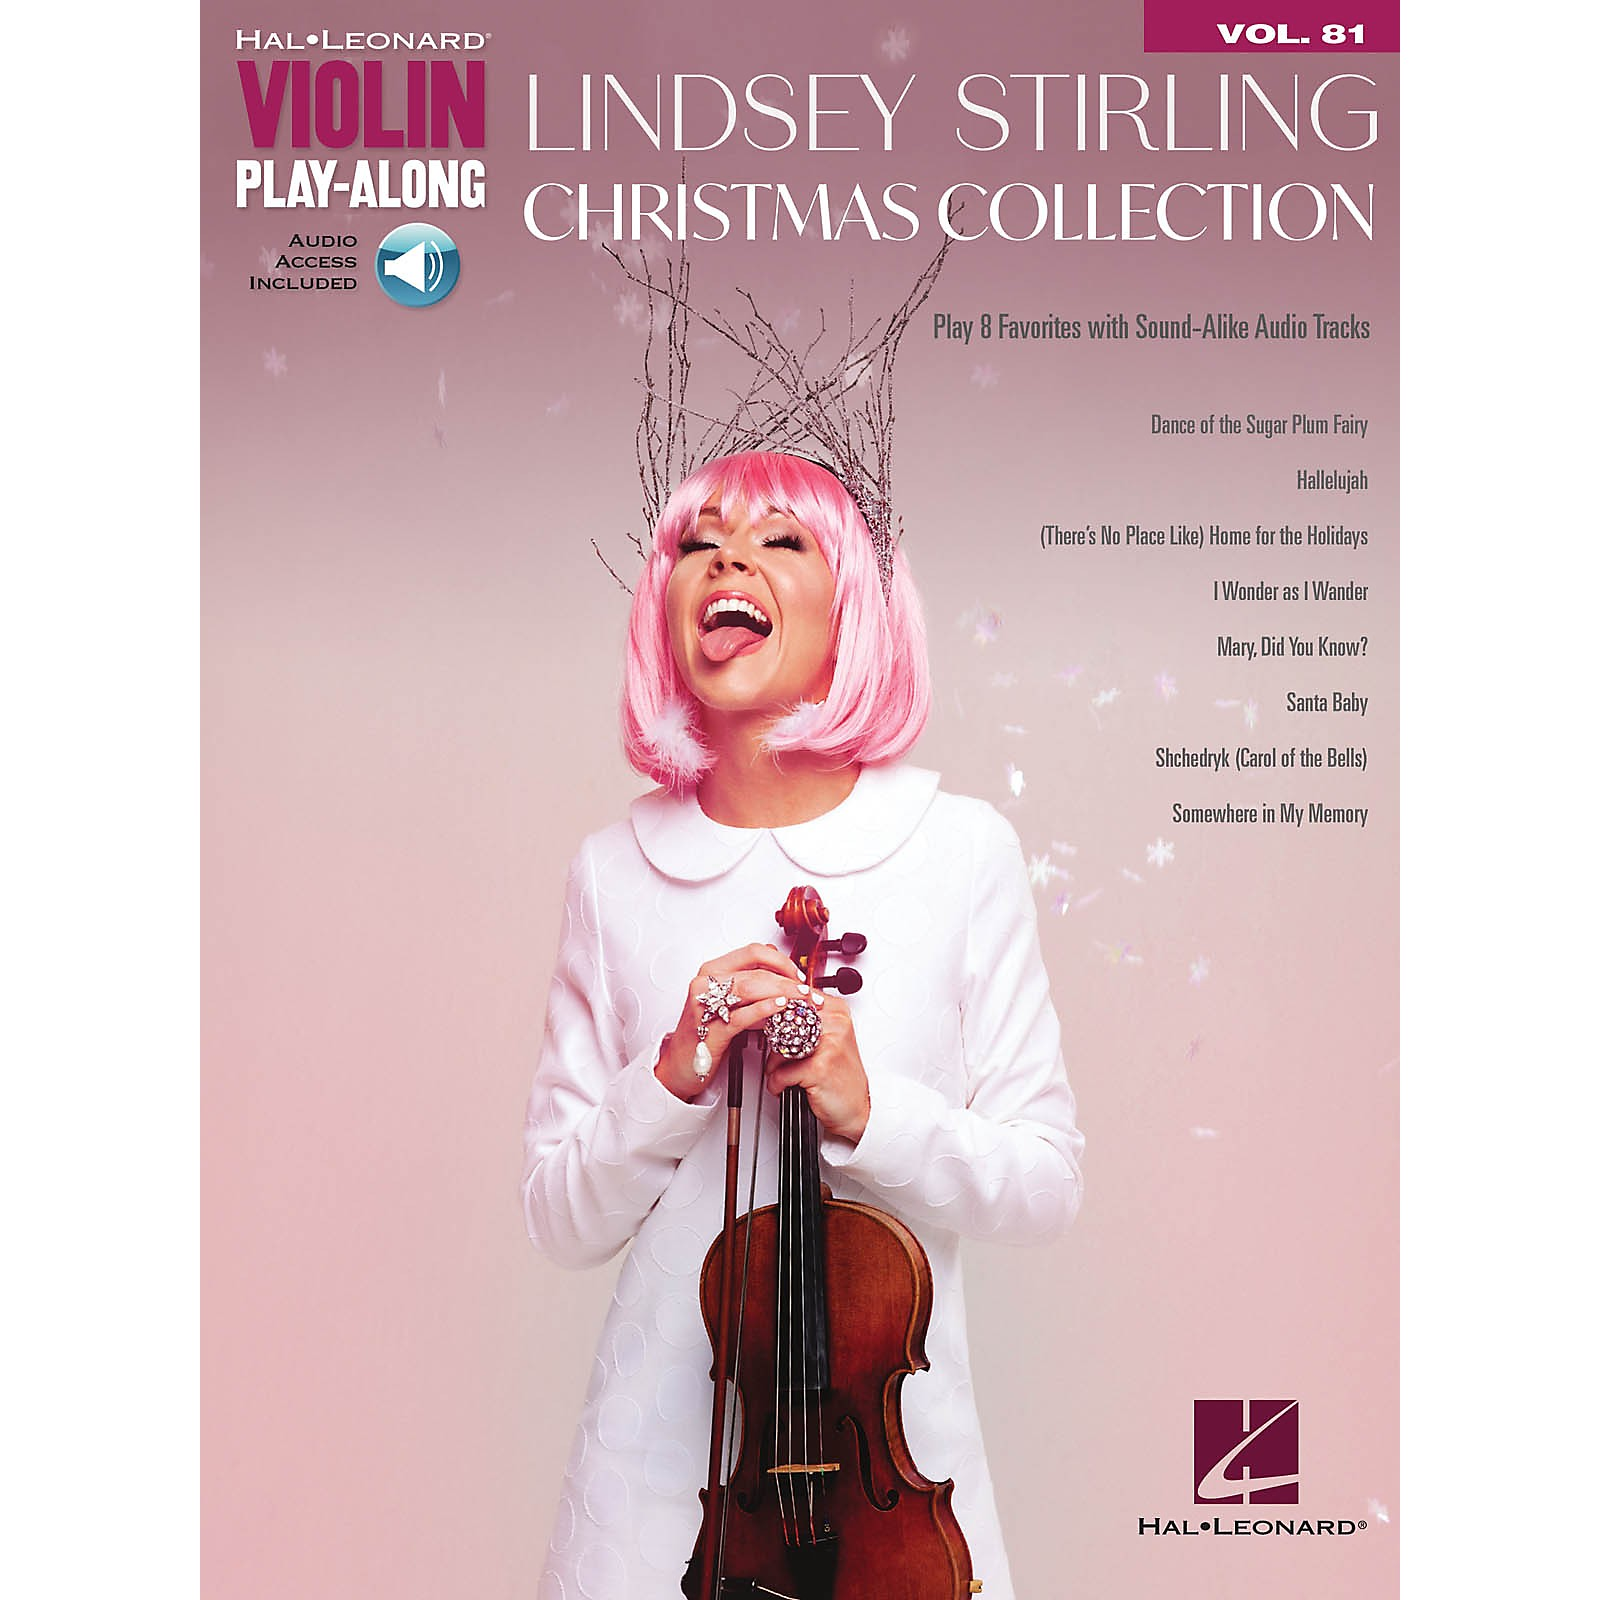 Hal Leonard Lindsey Stirling - Christmas Collection Violin Play-Along Volume 81 Book/Audio Online